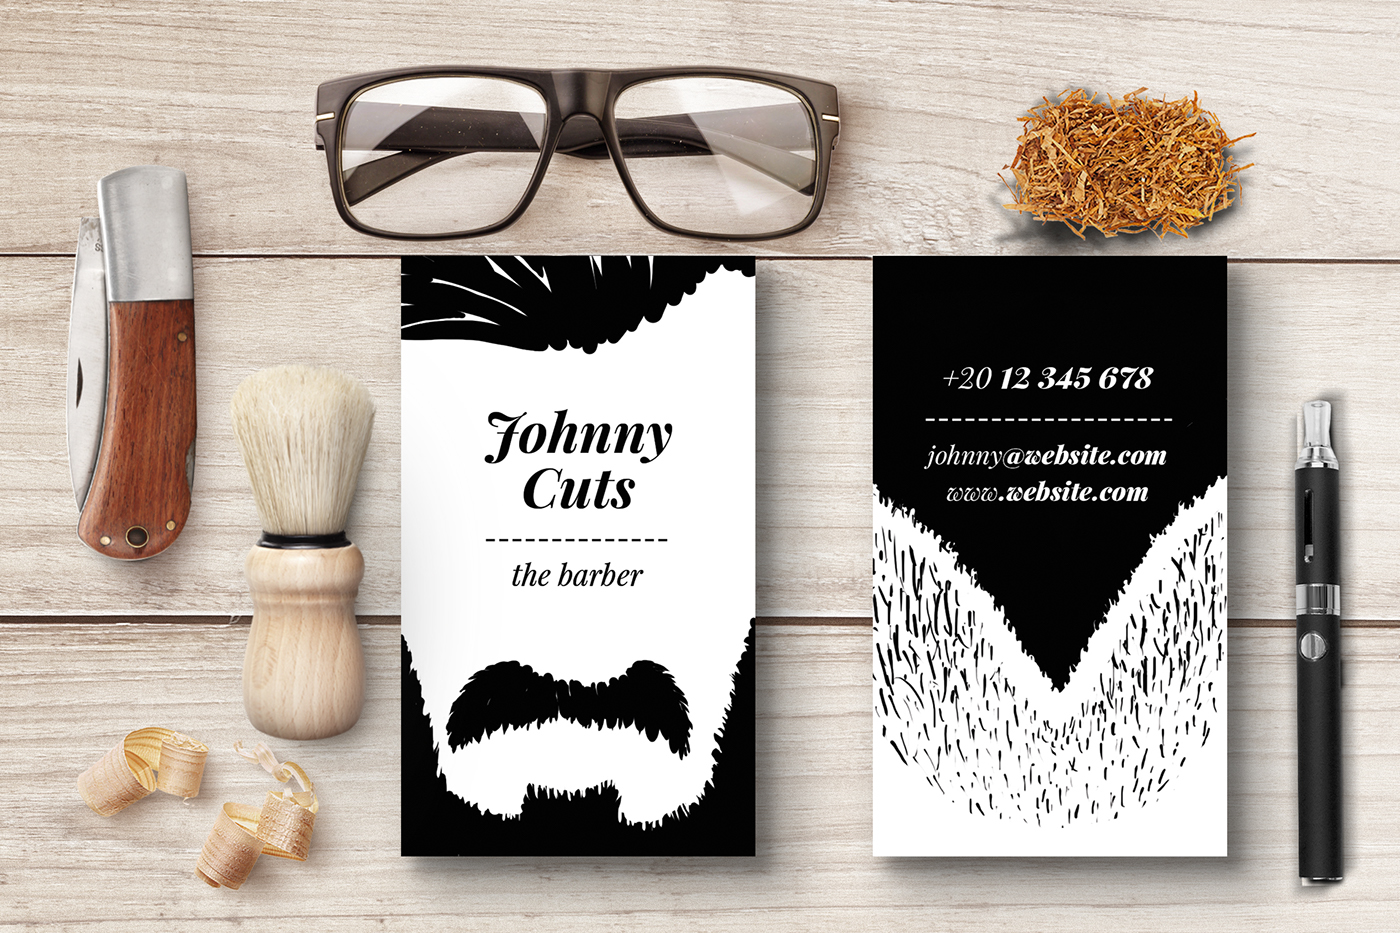 The barber business cards templates on behance choose your hairstyle and your beard then edit your name and youre done customize the business card to match your style you have 25 variations possible cheaphphosting Images